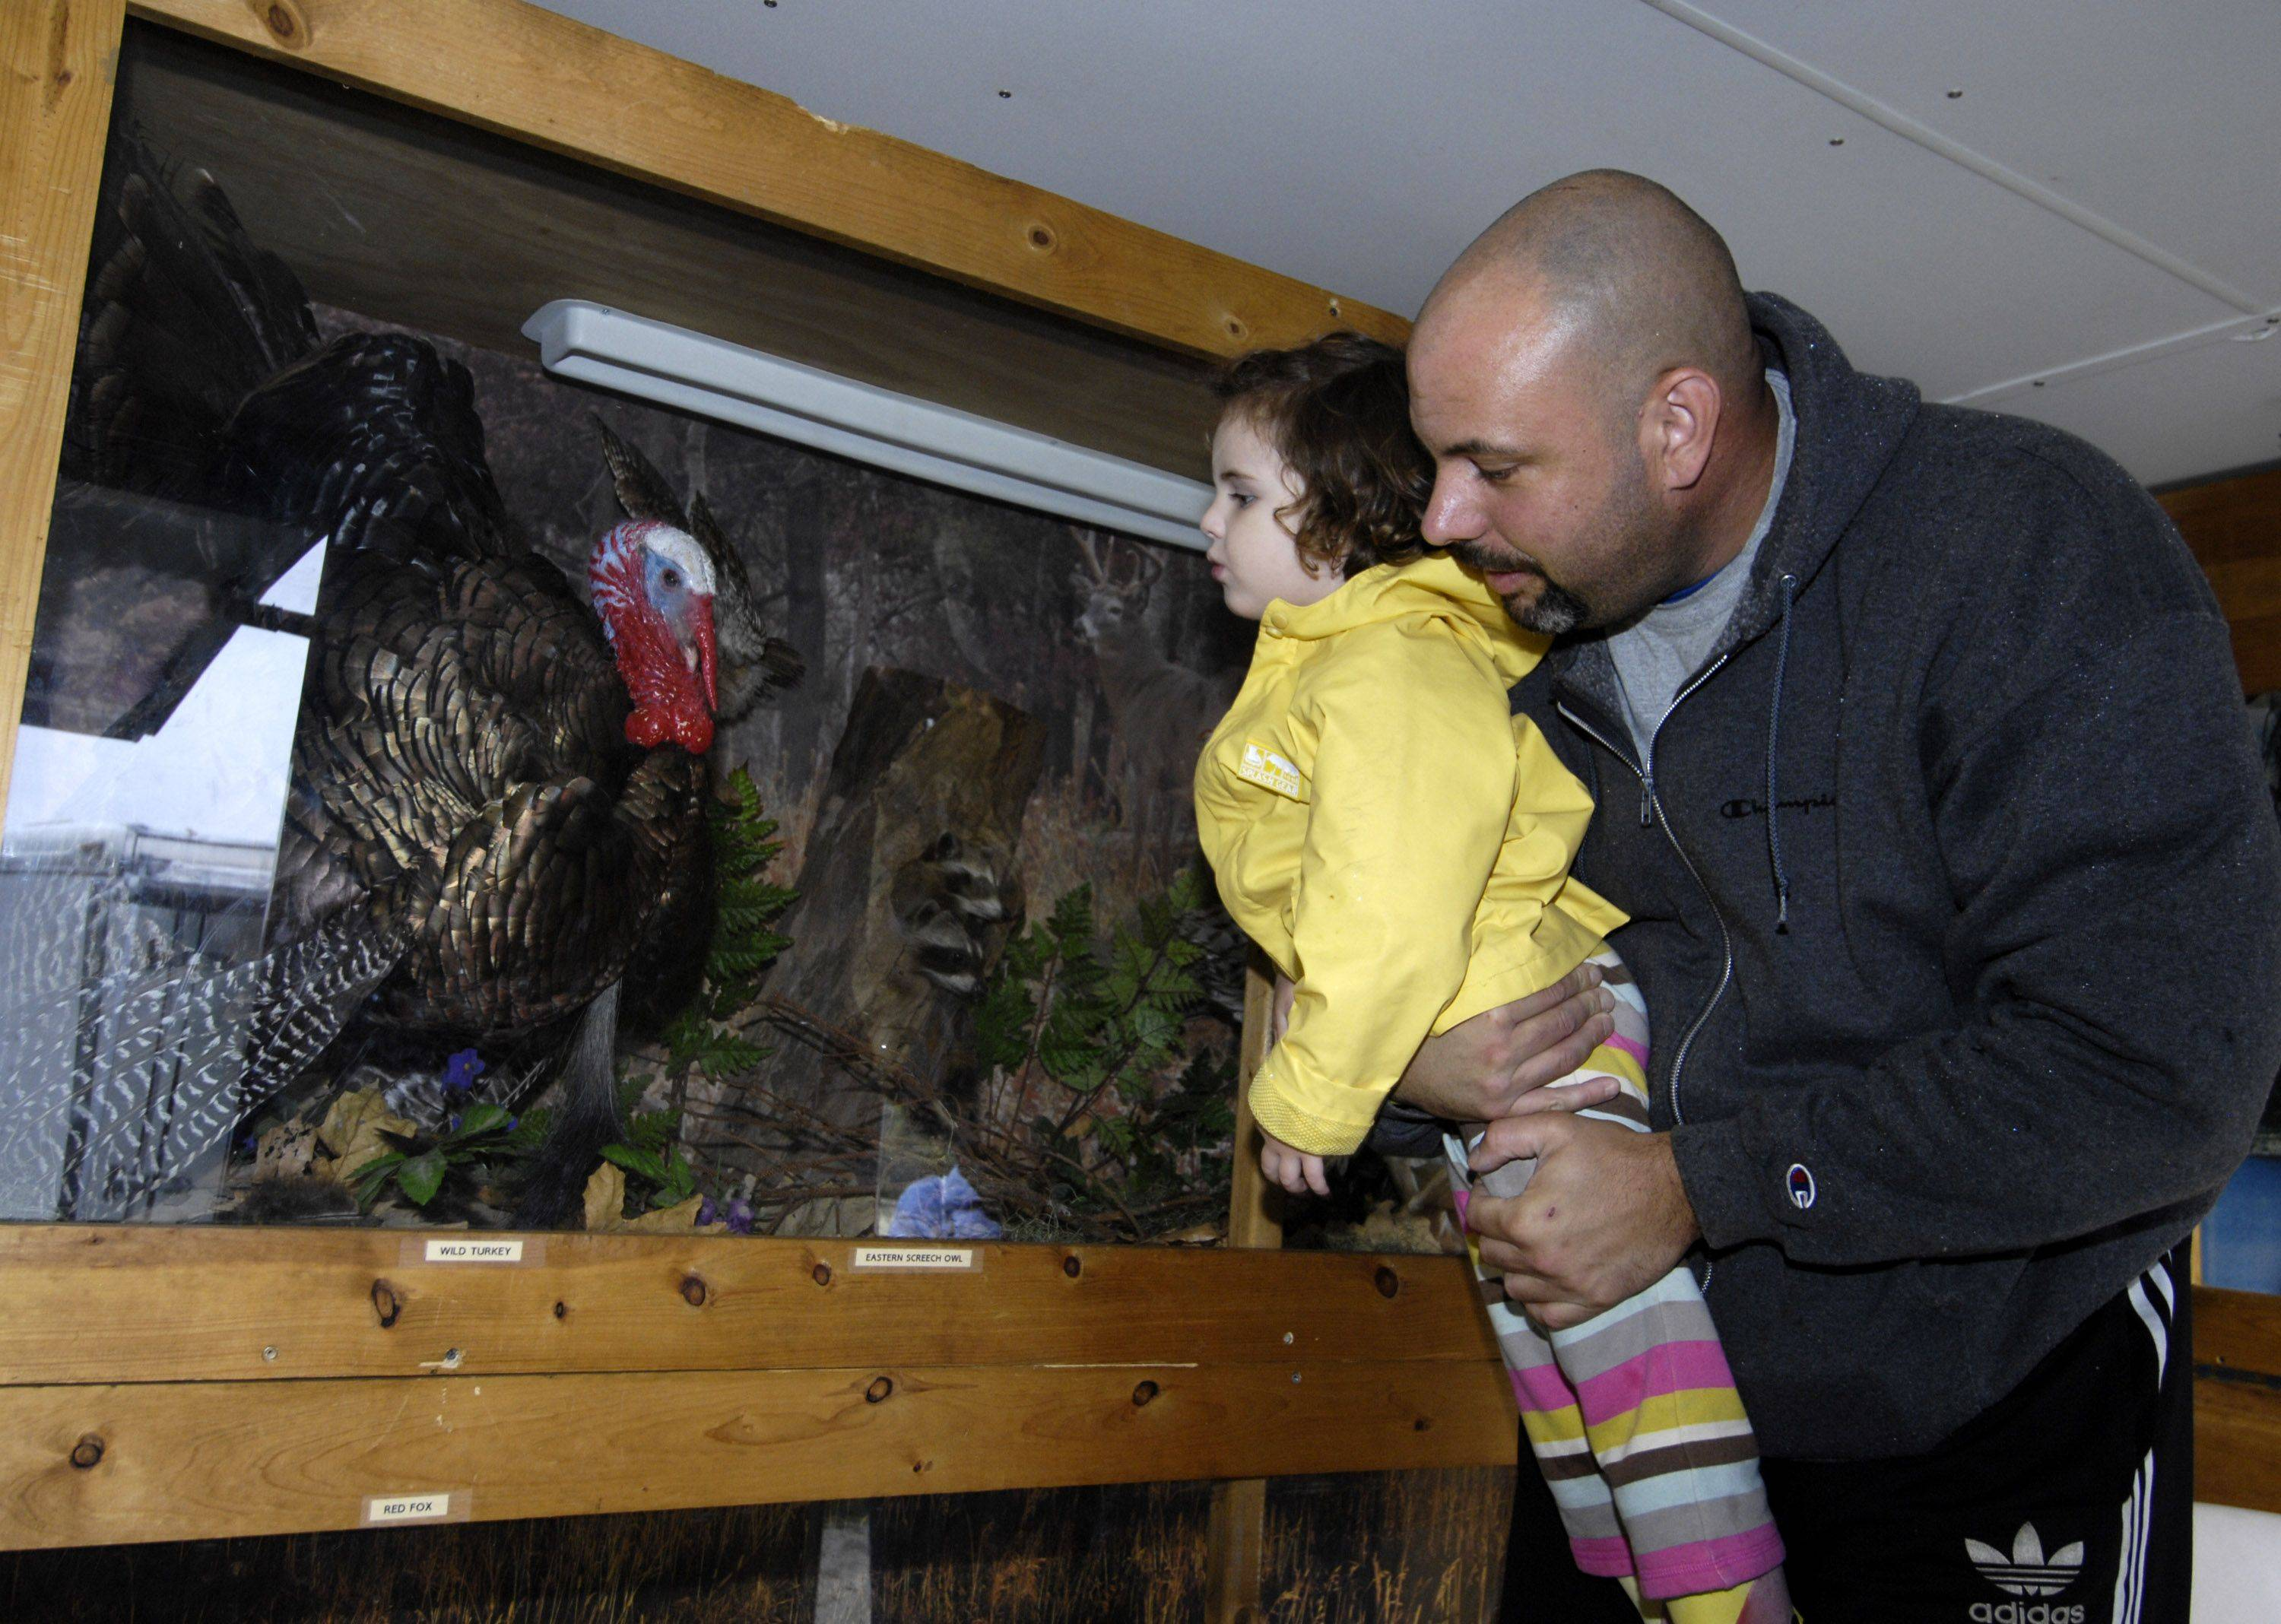 Betsy Facchini, 2, of Lombard, is lifted up by her dad, Bill, as they look at native animals in the Illinois Department of Natural Resources mobile Wildlife Education trailer Sunday. The trailer was a feature at Prairie Days at Terrace View Park, sponsored by the Lombard Park District and the Lombard Garden Club.